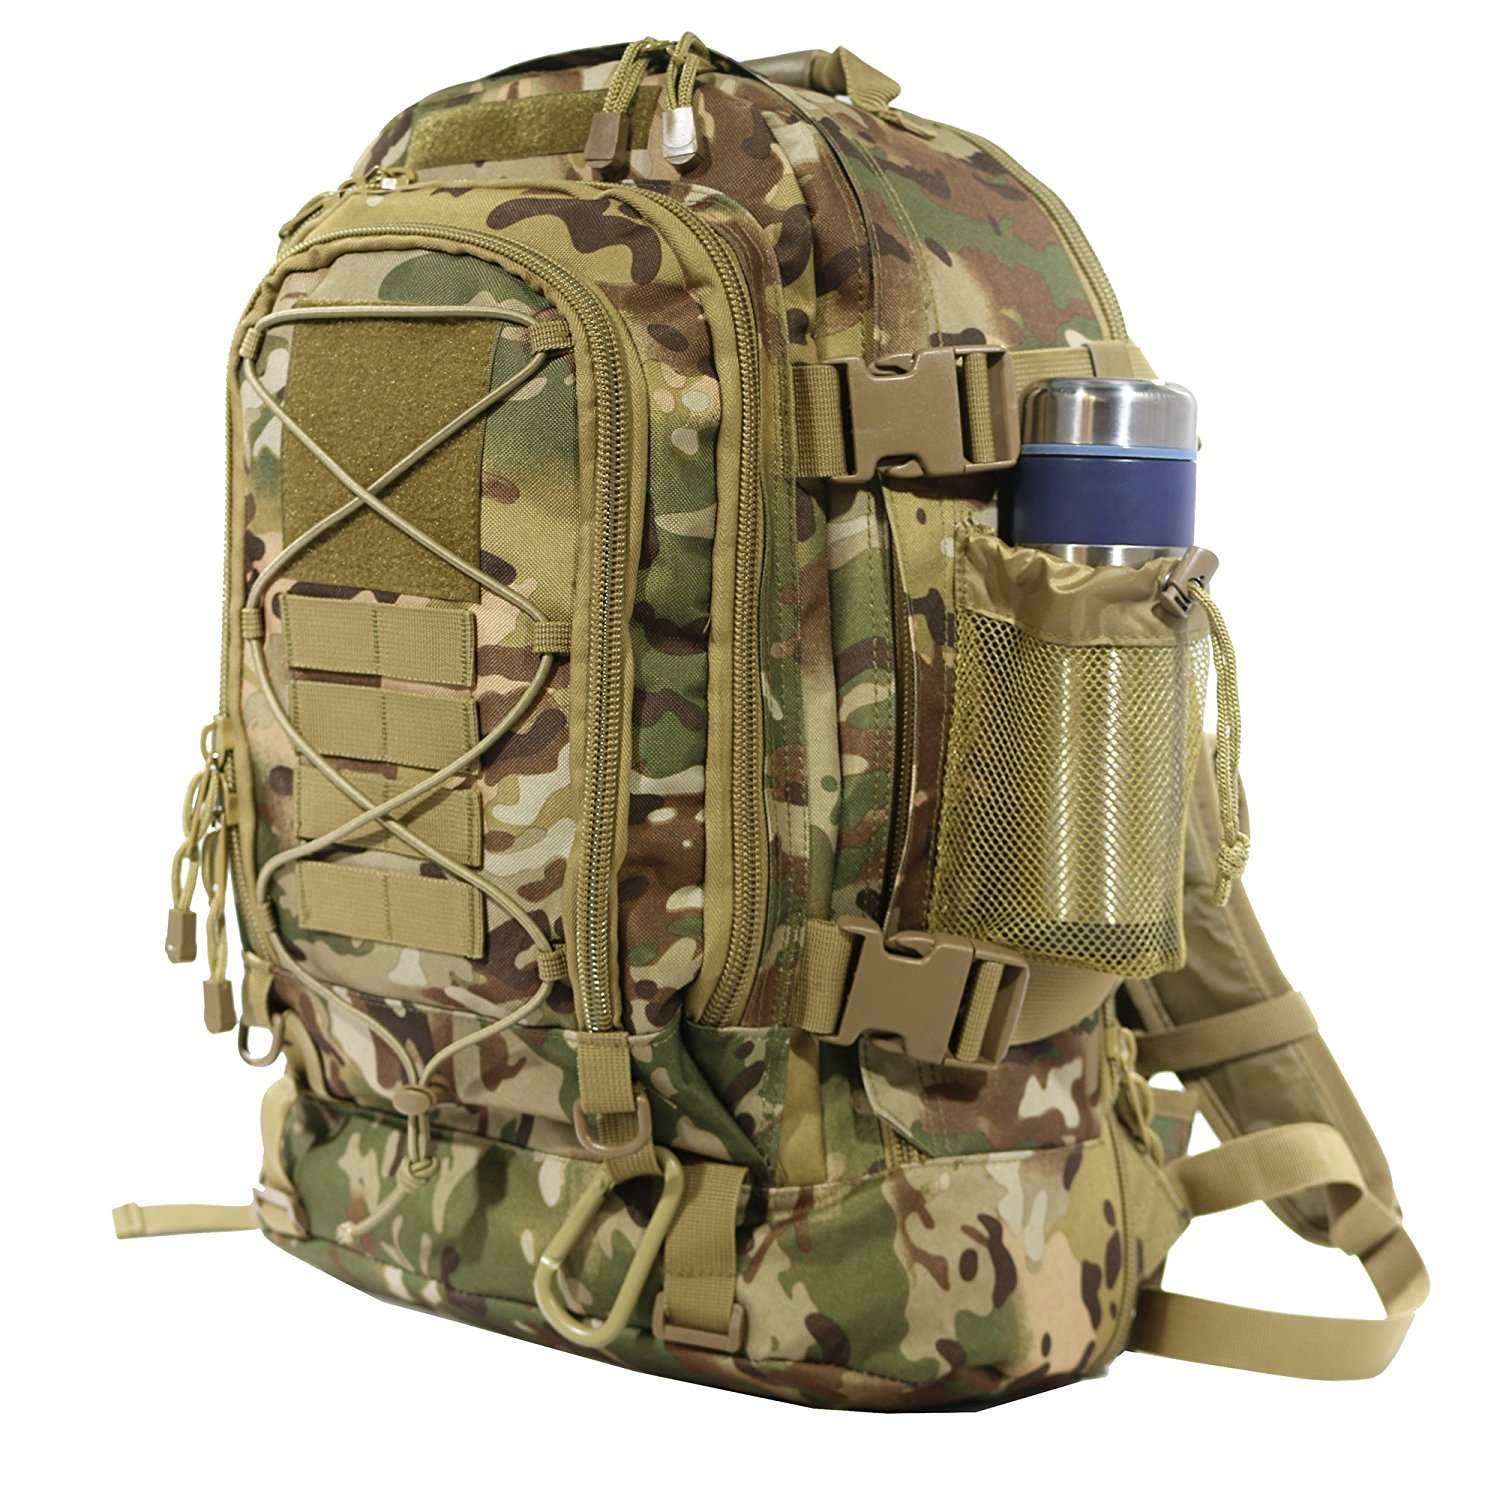 ARMYCAMOUSA 40L Outdoor Expandable Tactical Backpack Military Sport Camping Hiking Trekking Bag (08001 Multicam)